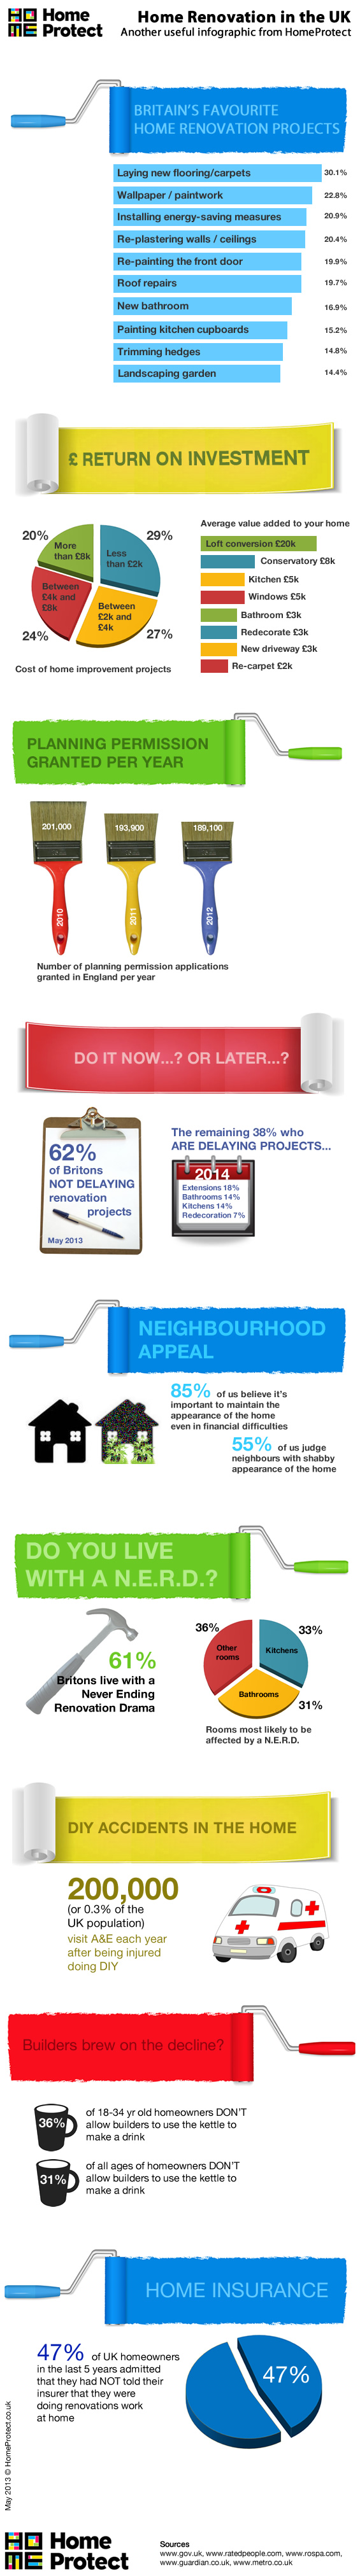 5. Home renovation in the UK